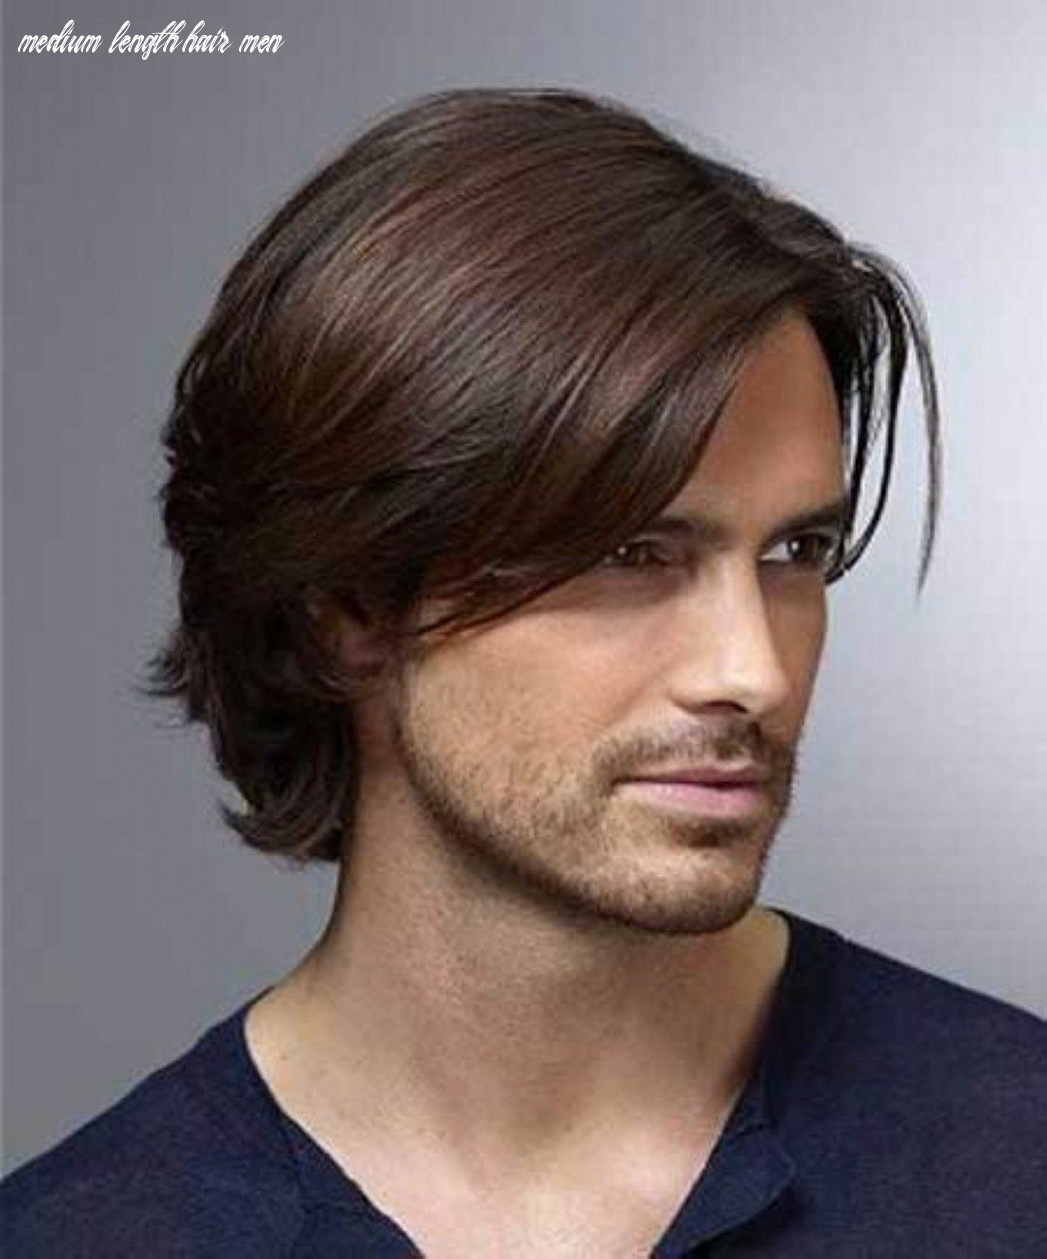 Pin on hair medium length hair men